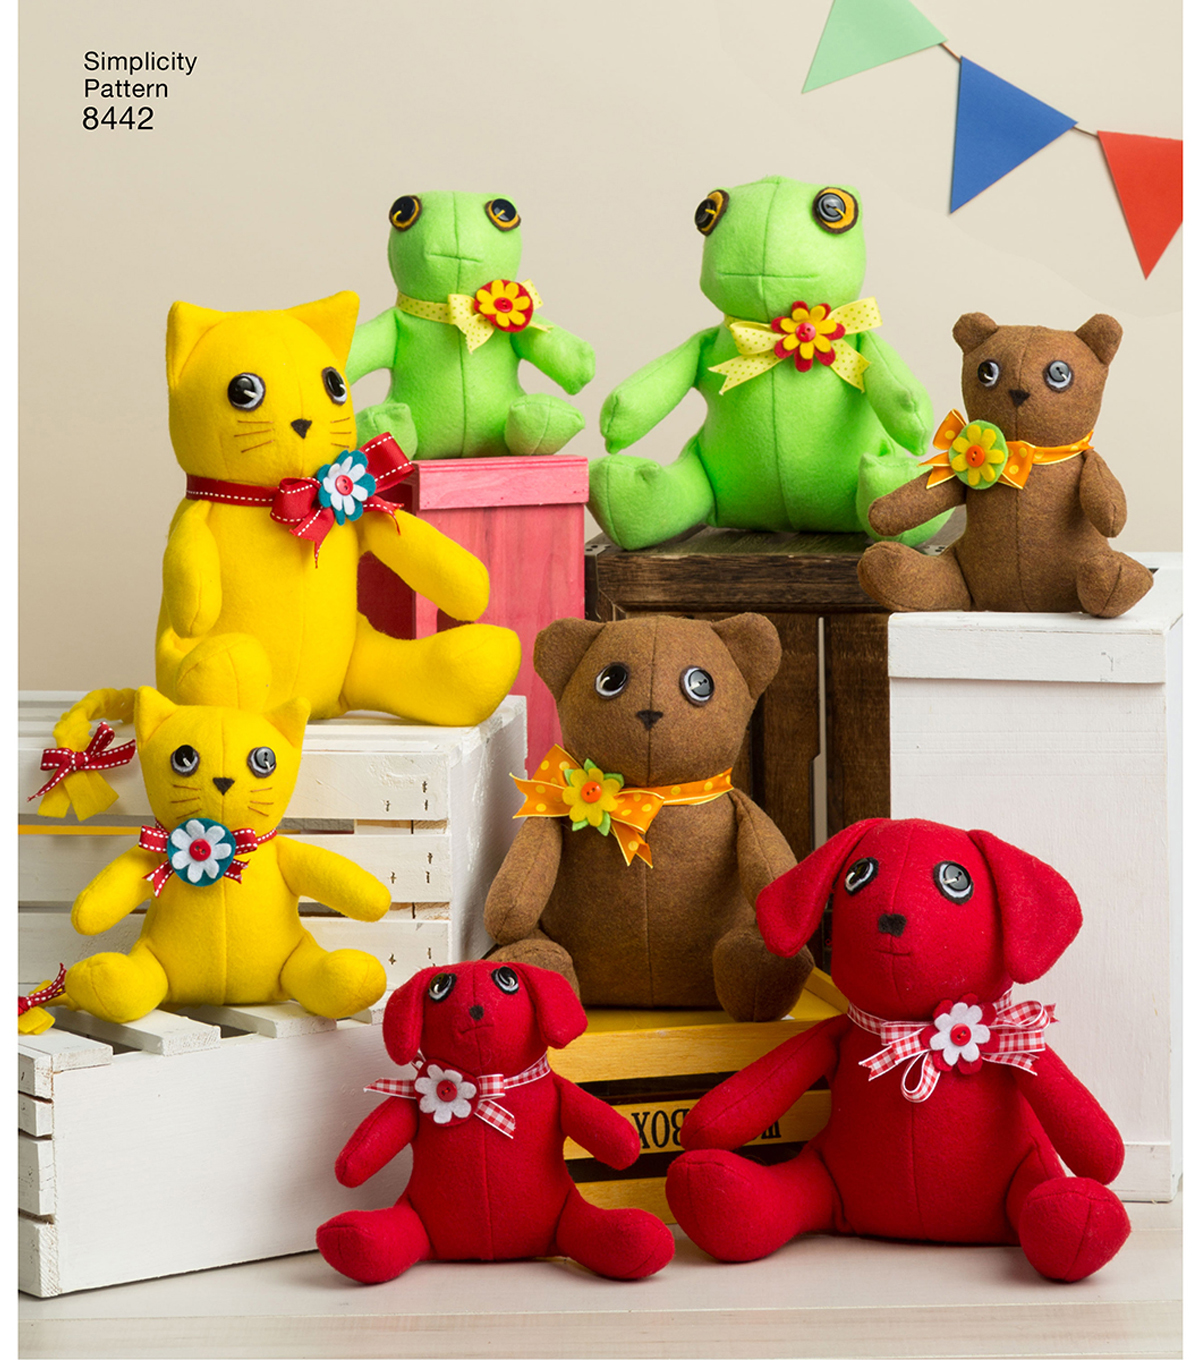 Simplicity Pattern 8442 Felt Stuffed Animals in Two Sizes